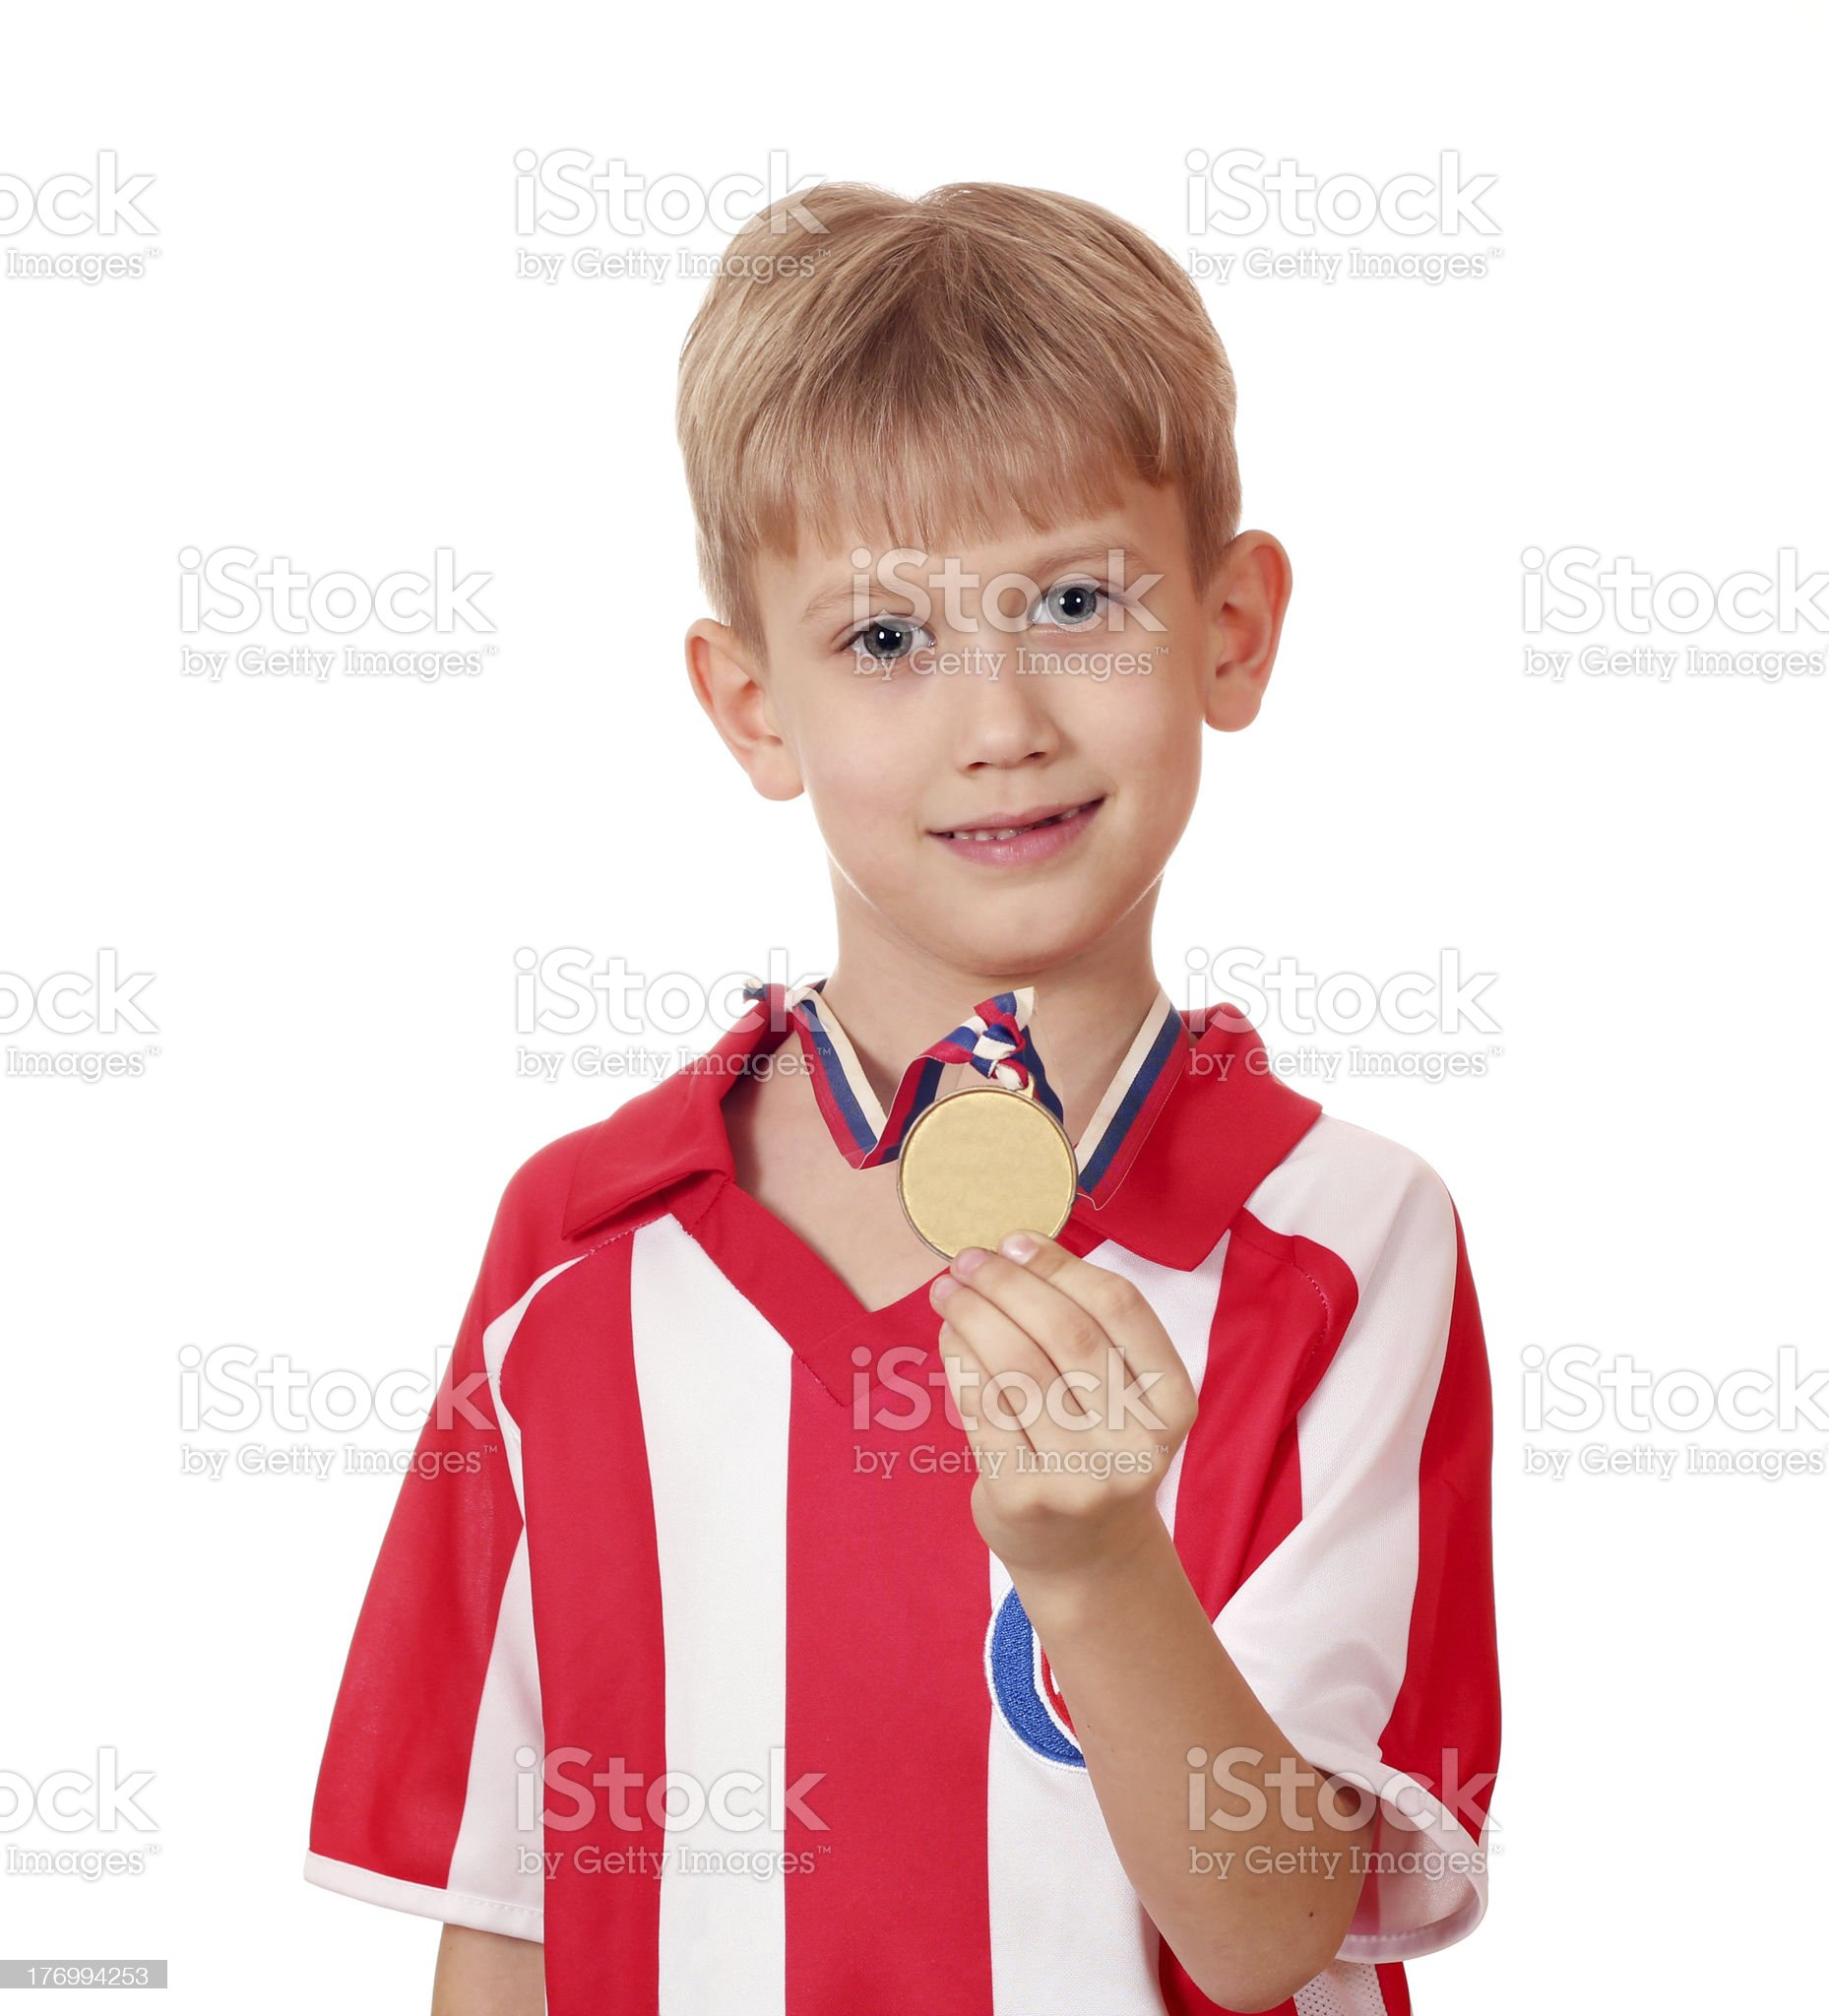 boy with gold medal royalty-free stock photo